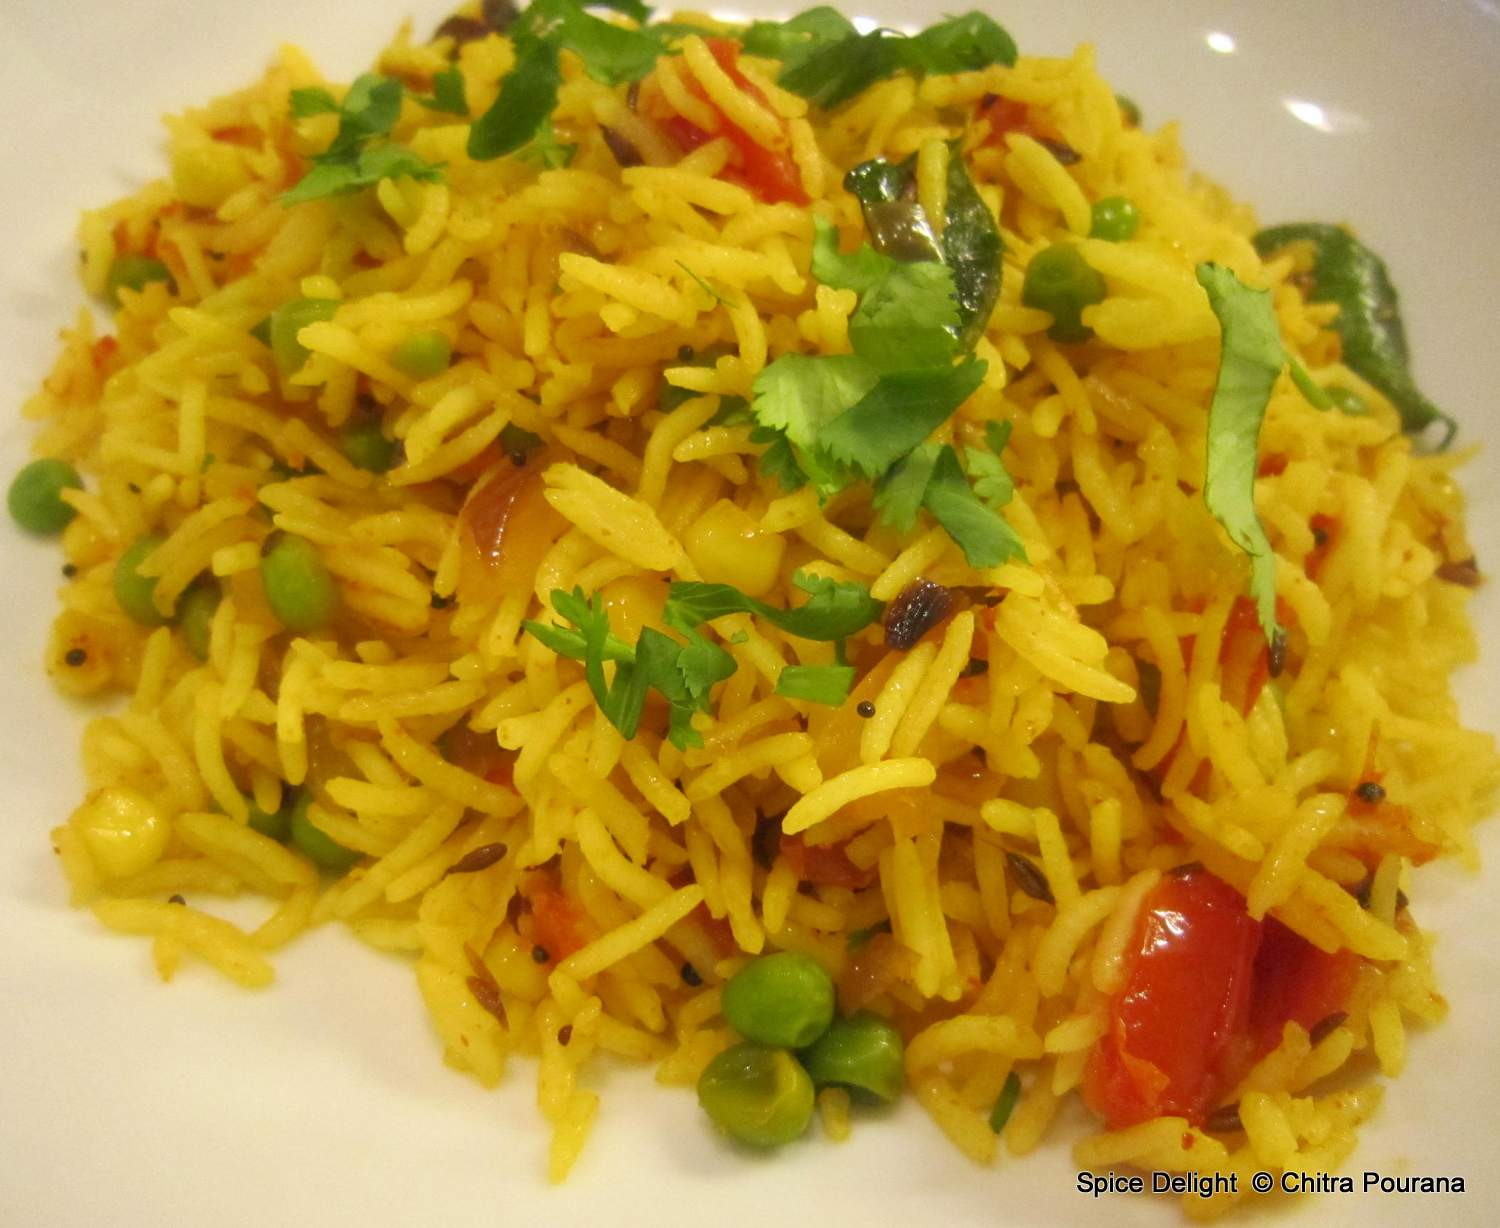 Spice Delight: Vegetable Pulao (Pilaf)